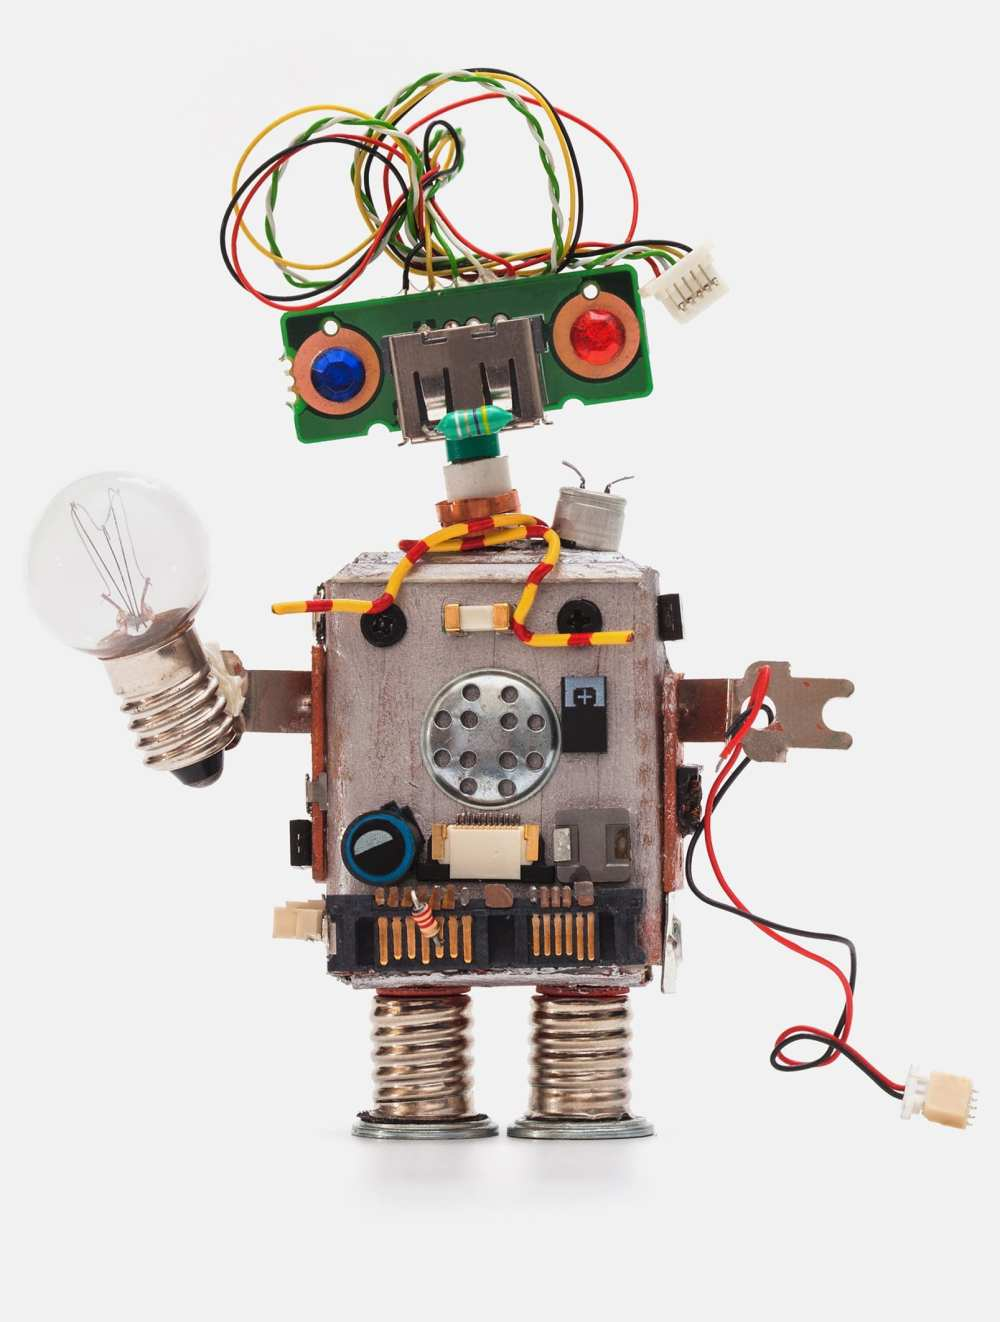 medium resolution of oops 404 error page not found futuristic robot concept with electrical wire hairstyle circuits socket chip toy mechanism funny head colored eyes